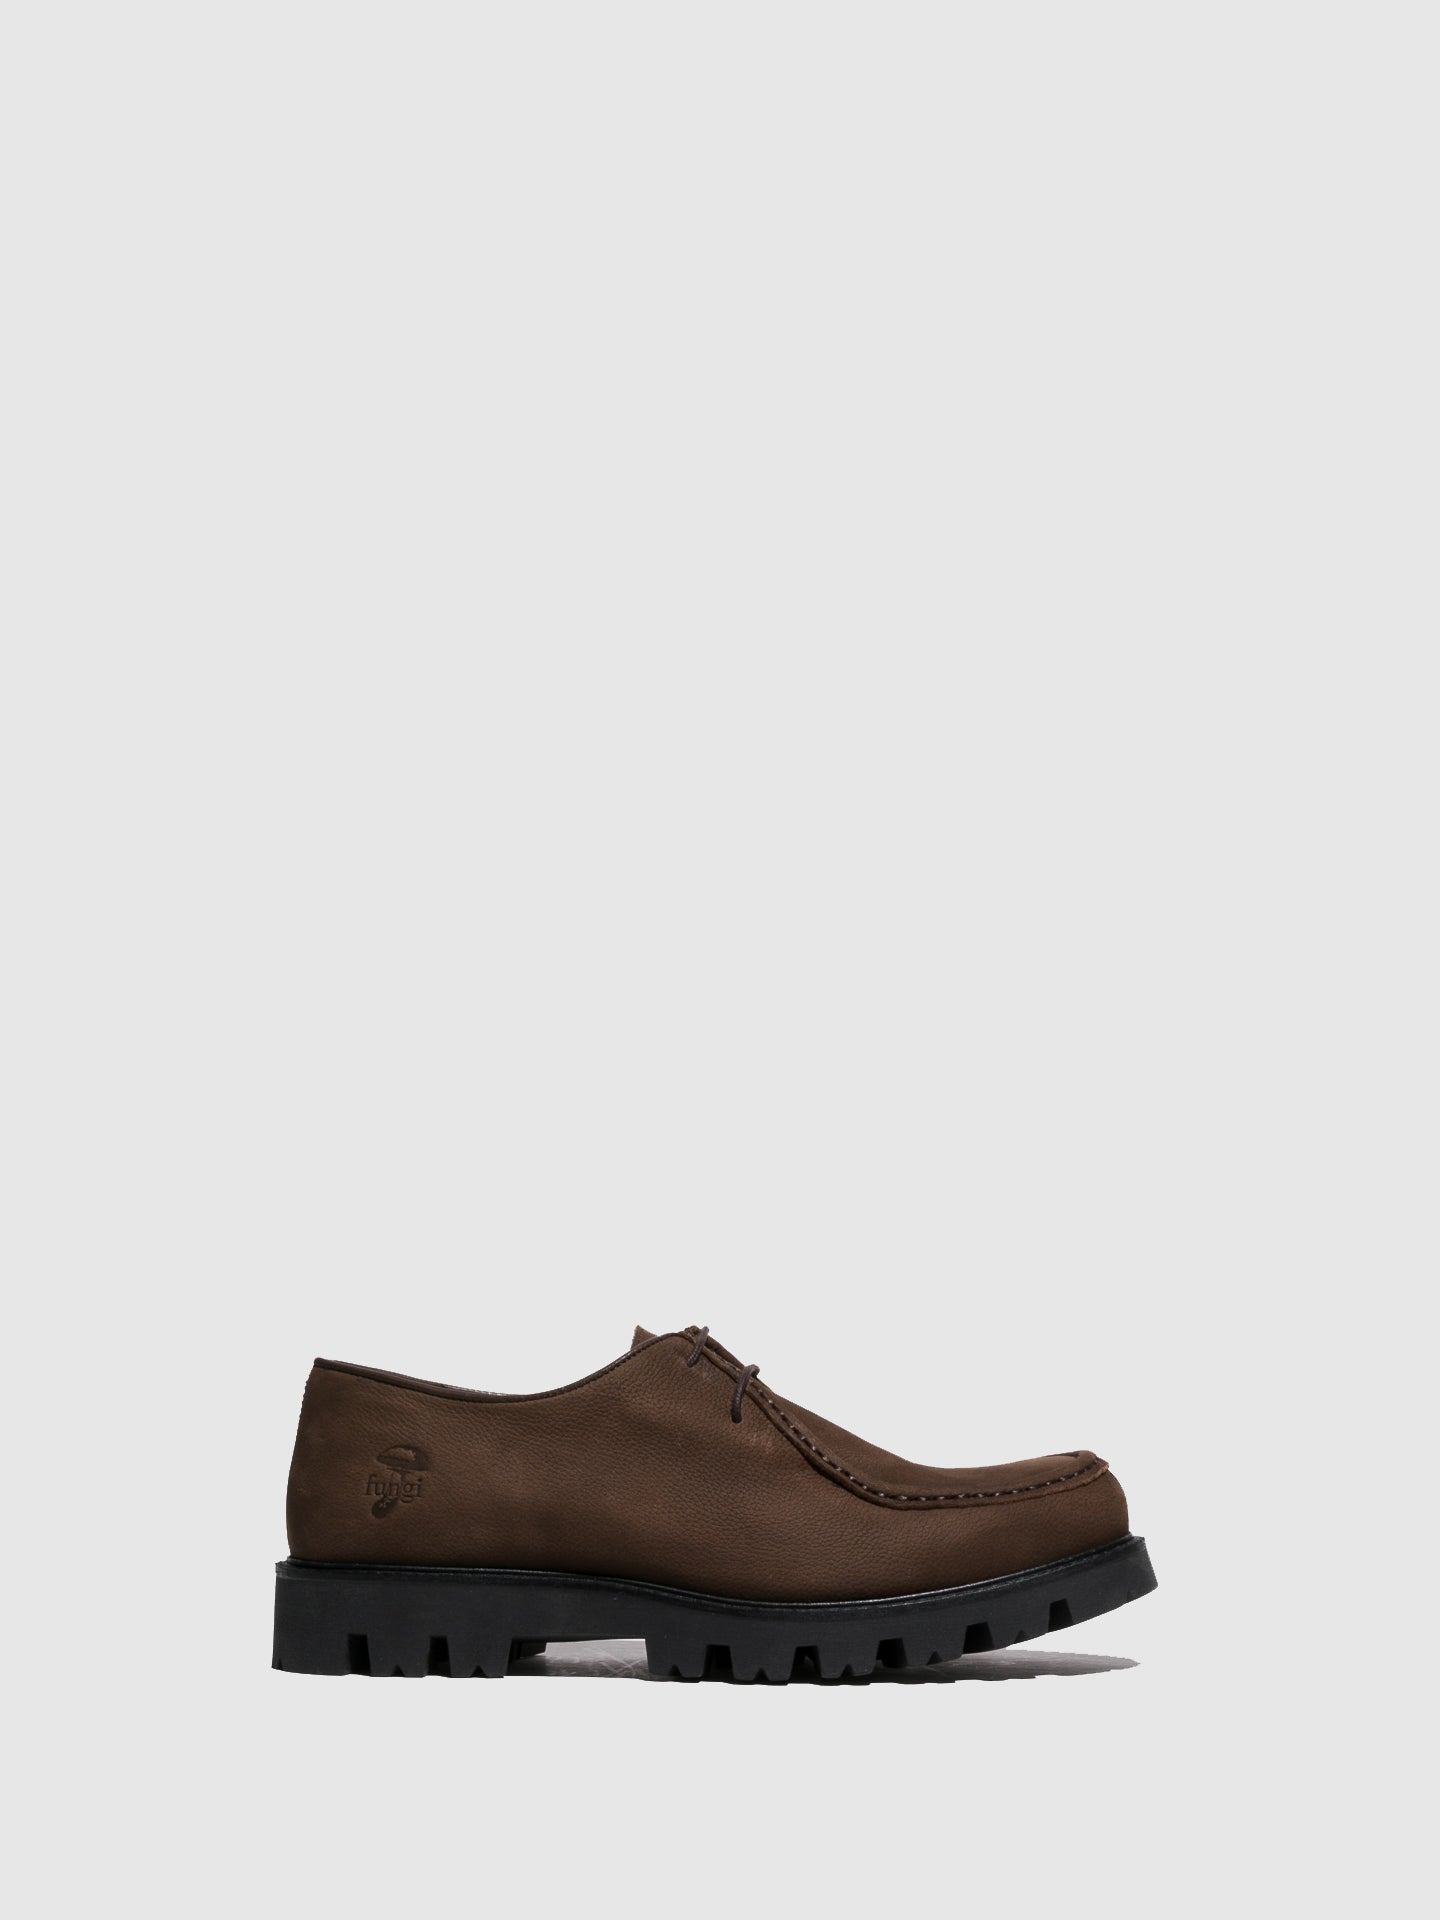 Fungi Brown Lace-up Shoes